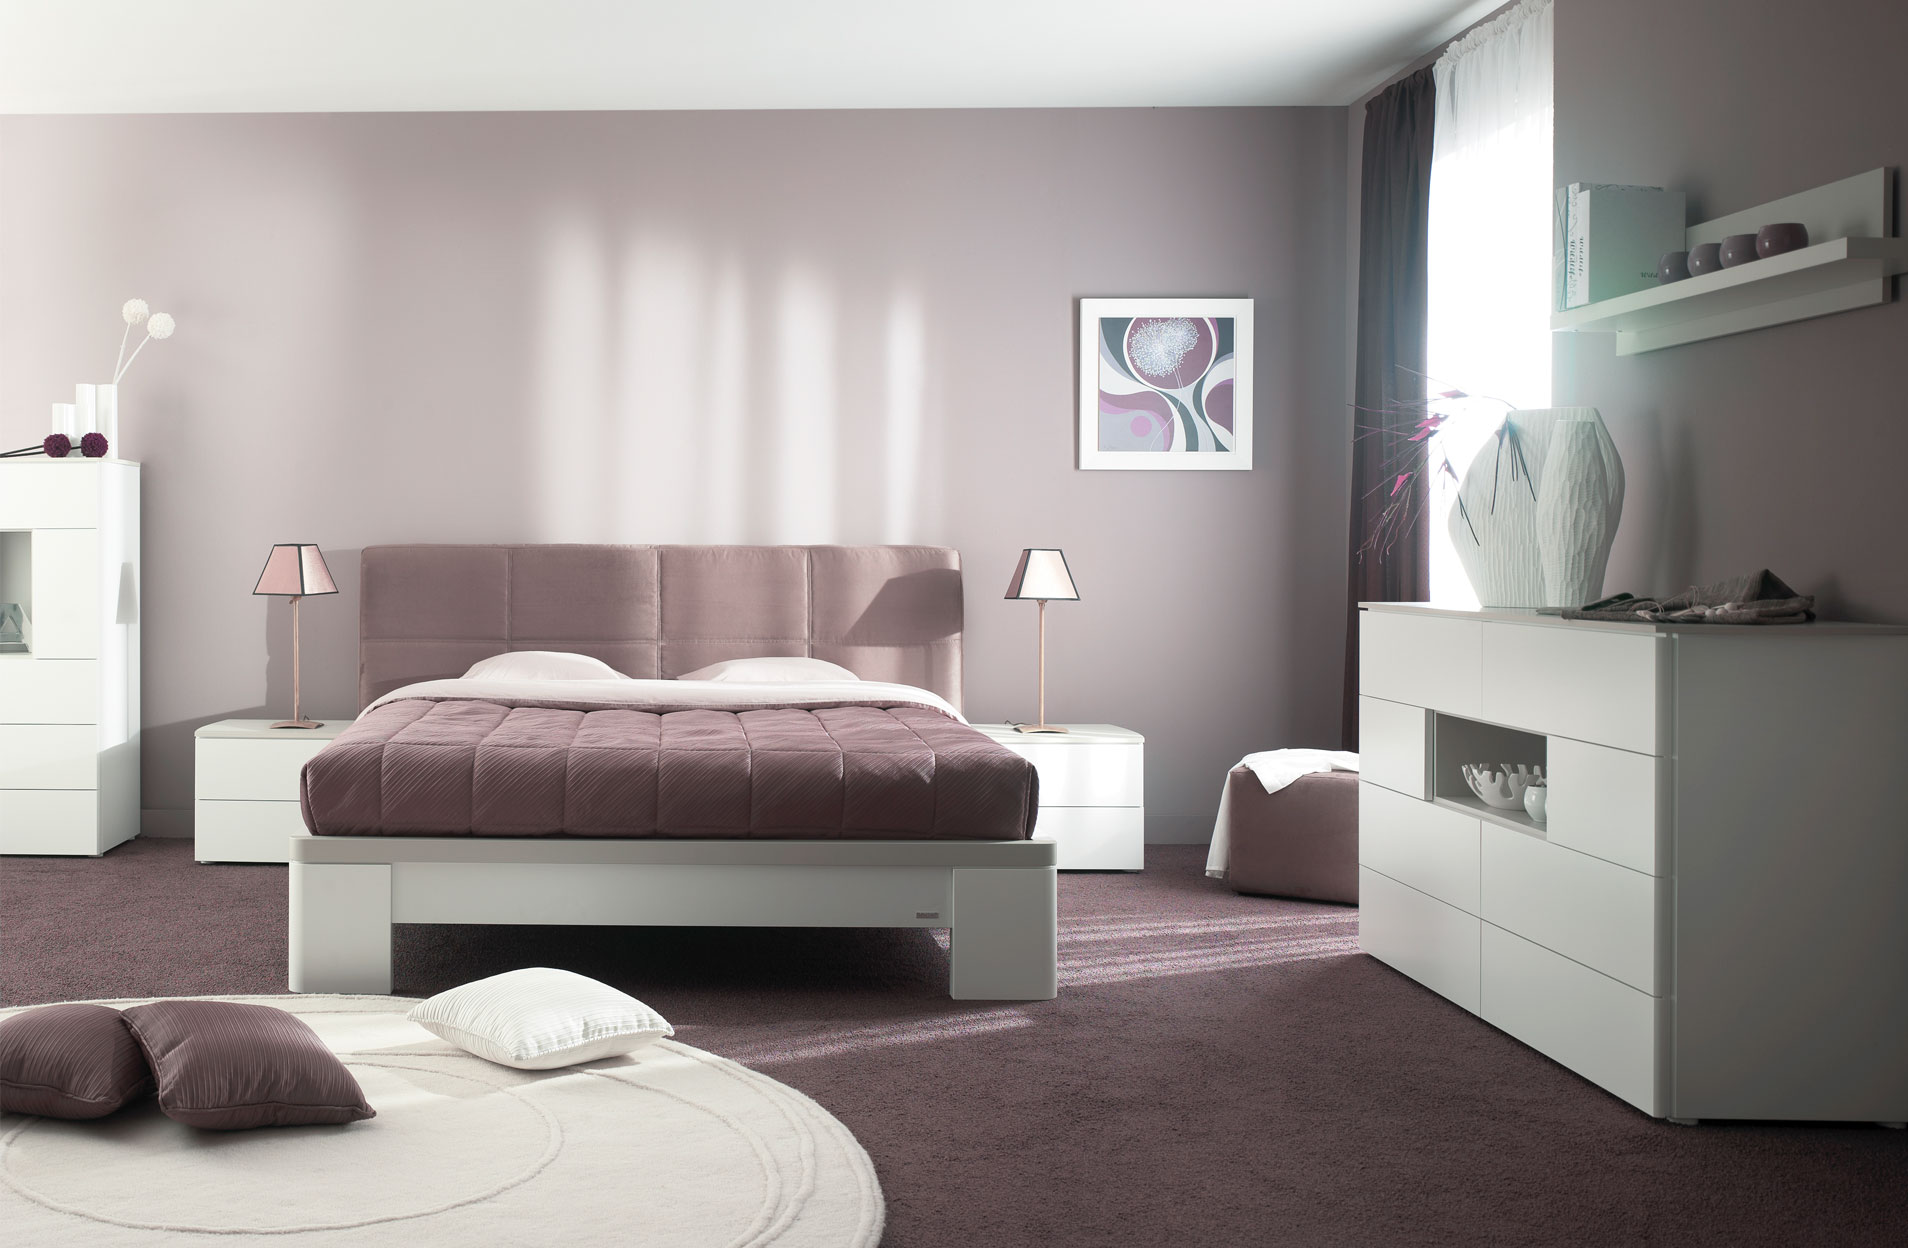 Inspiration d coration de chambre contemporaine gautier opalia for Decoration chambre a coucher contemporain